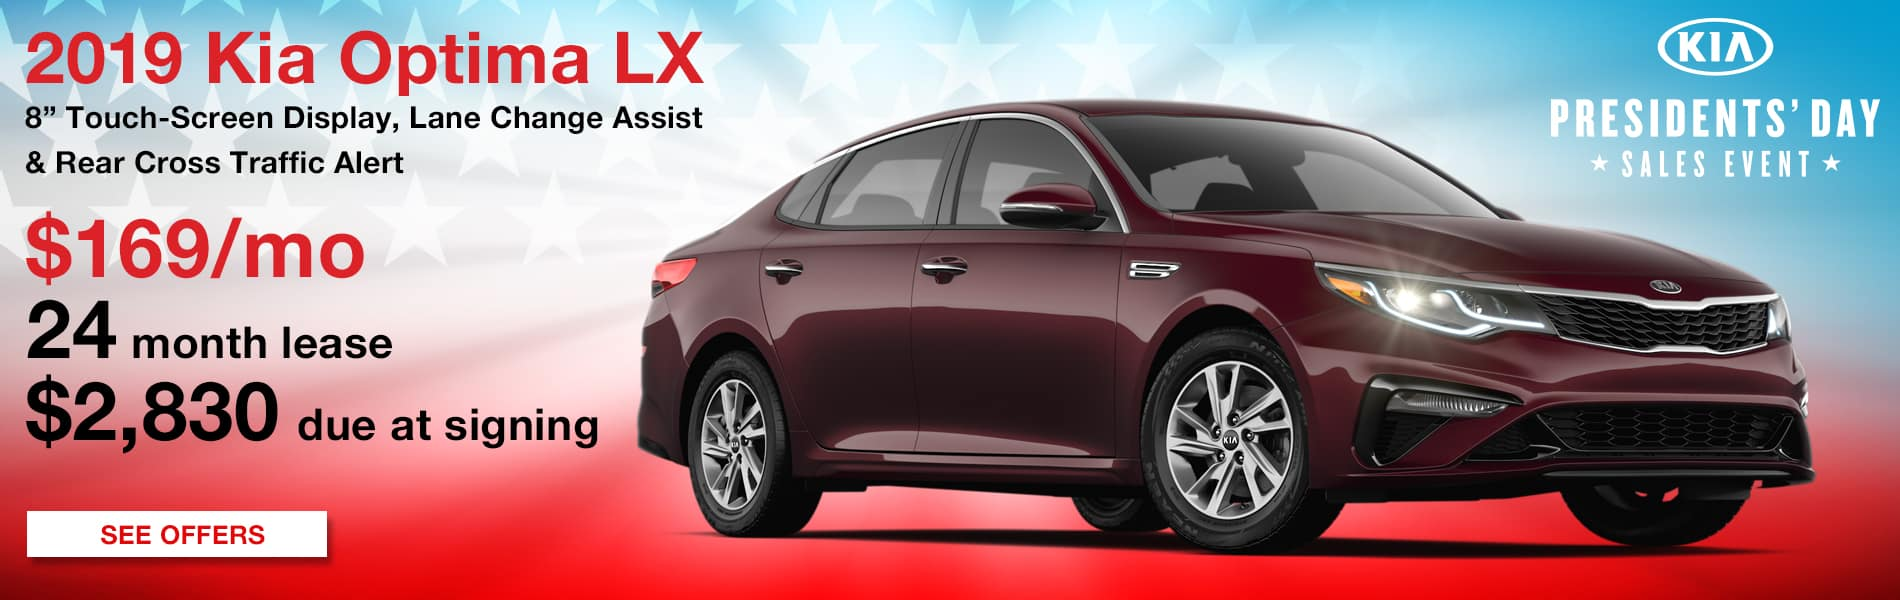 Lease a 2019 Optima LX for $169 per month with $2,830 due at signing.